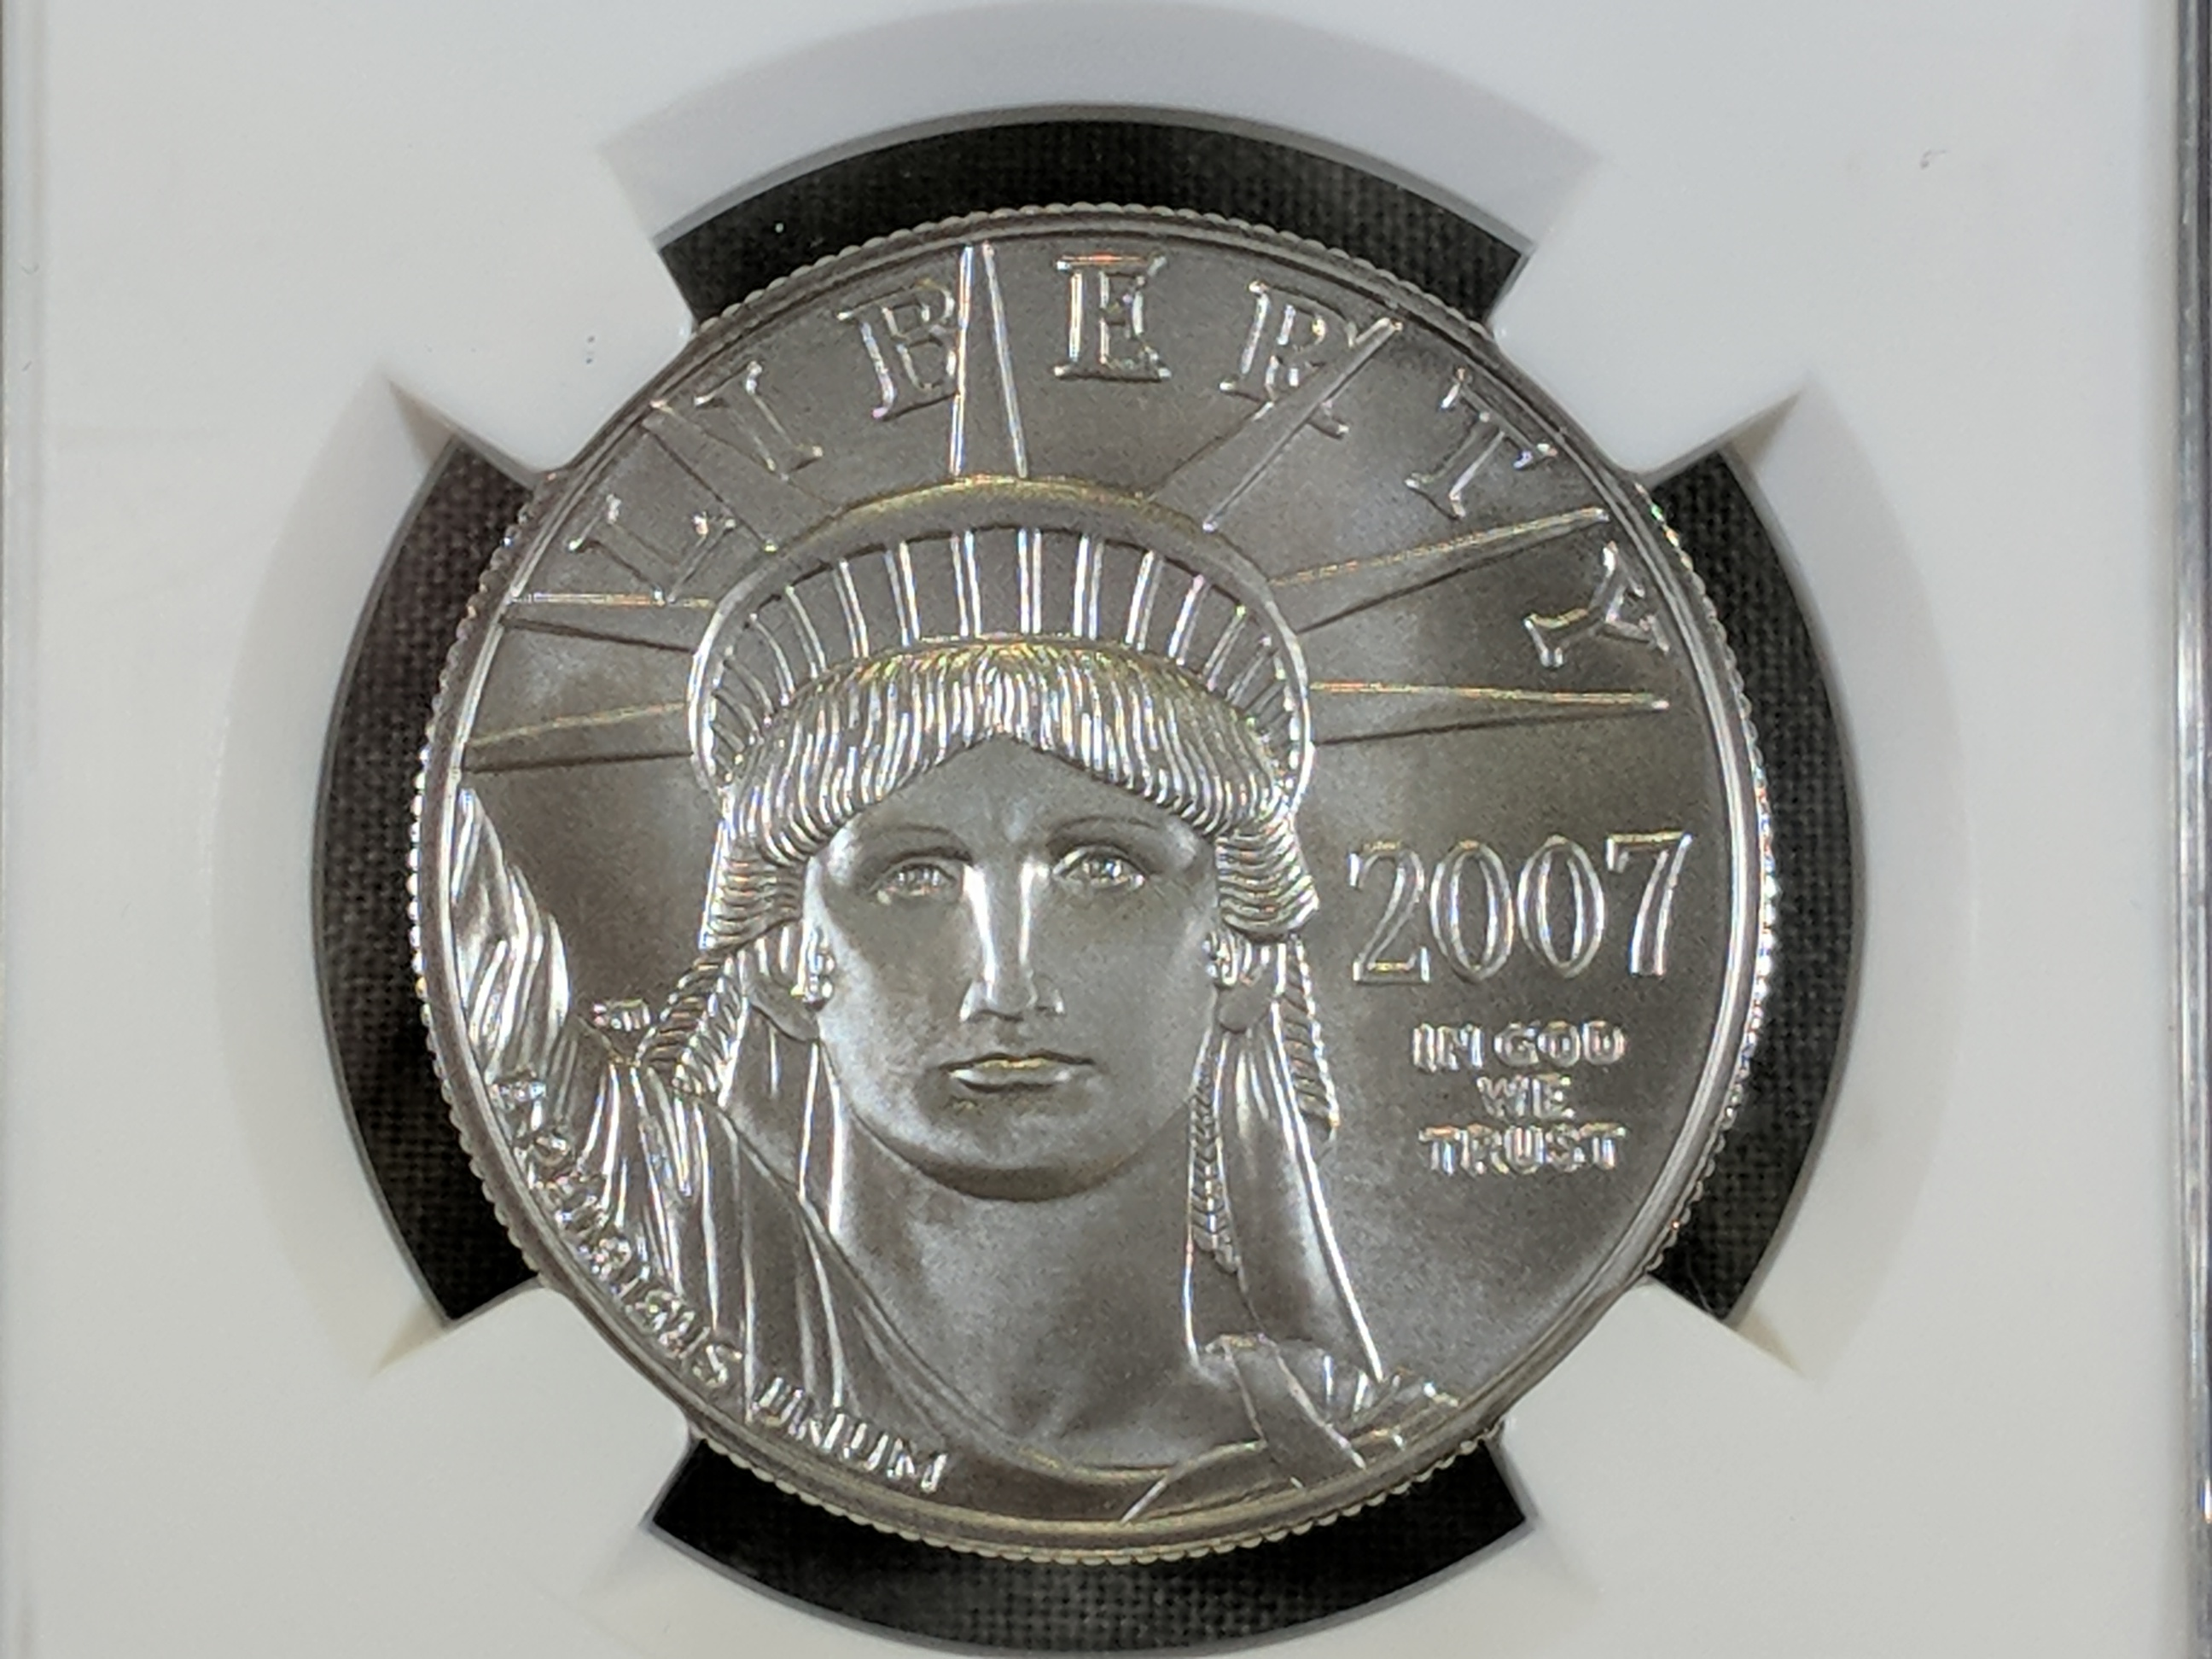 sell circulated platinum coins